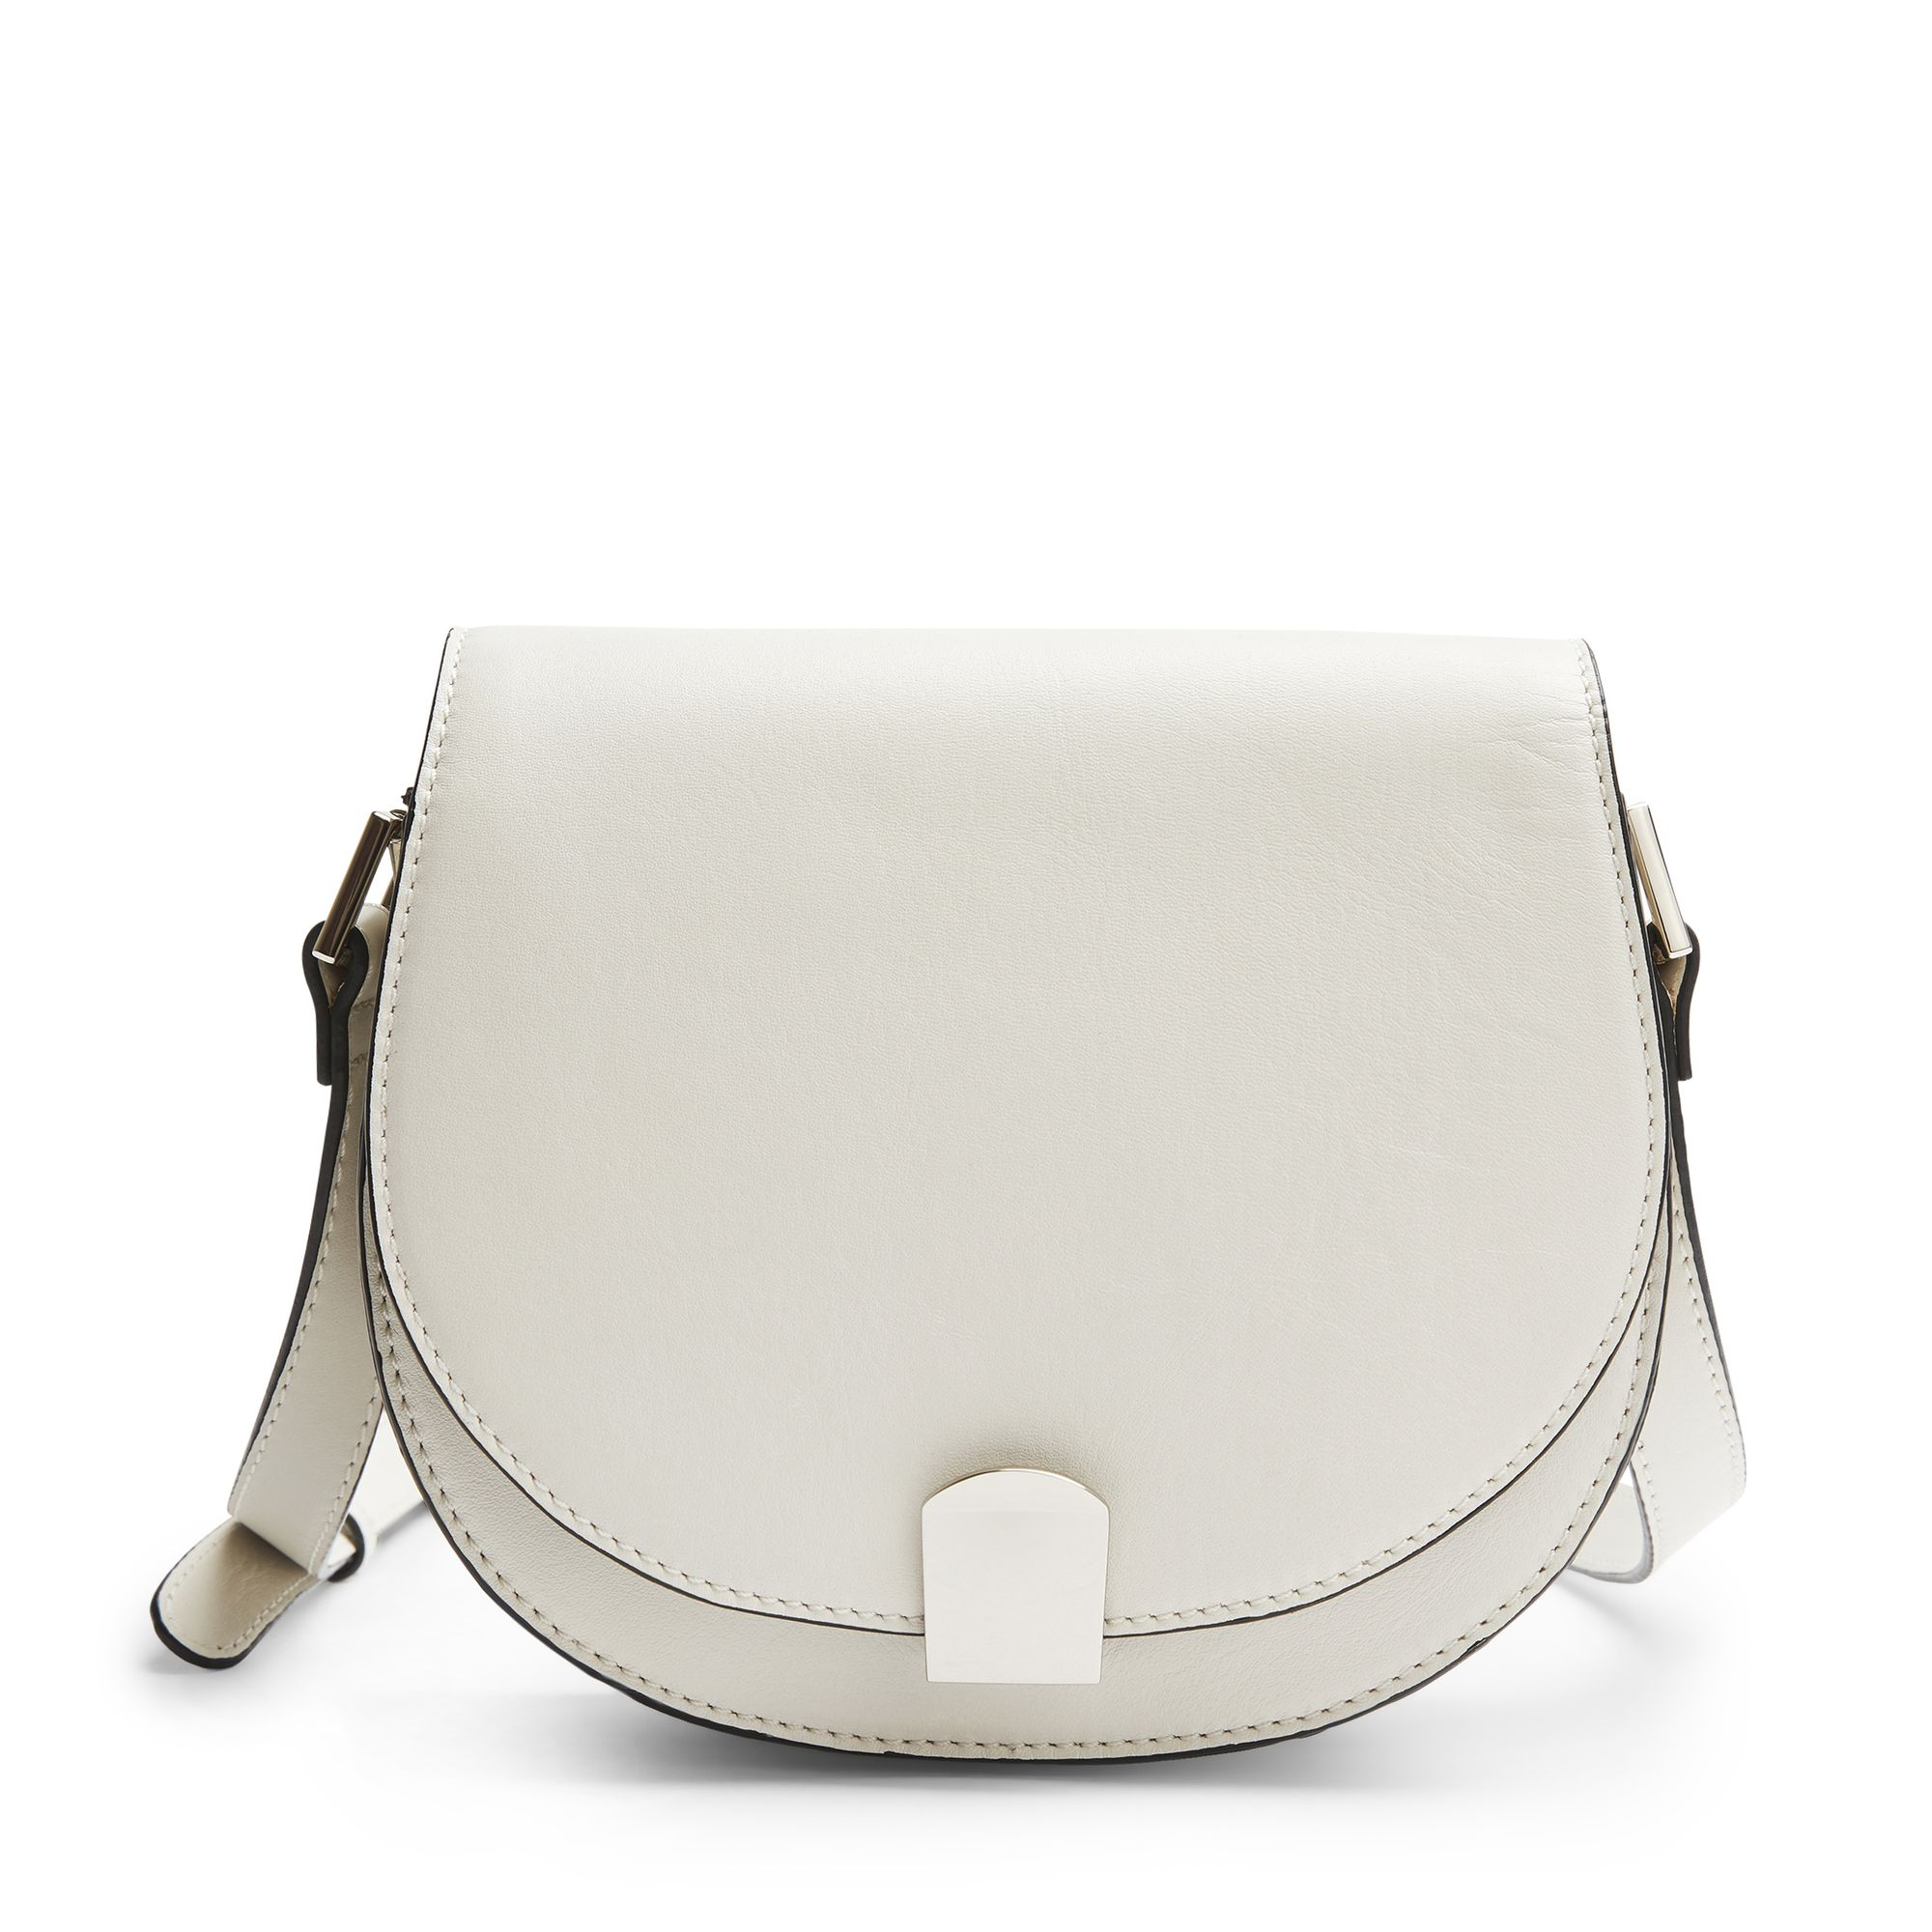 Rizzo Sandra Saddle Crossbody axelremsväska, Off White